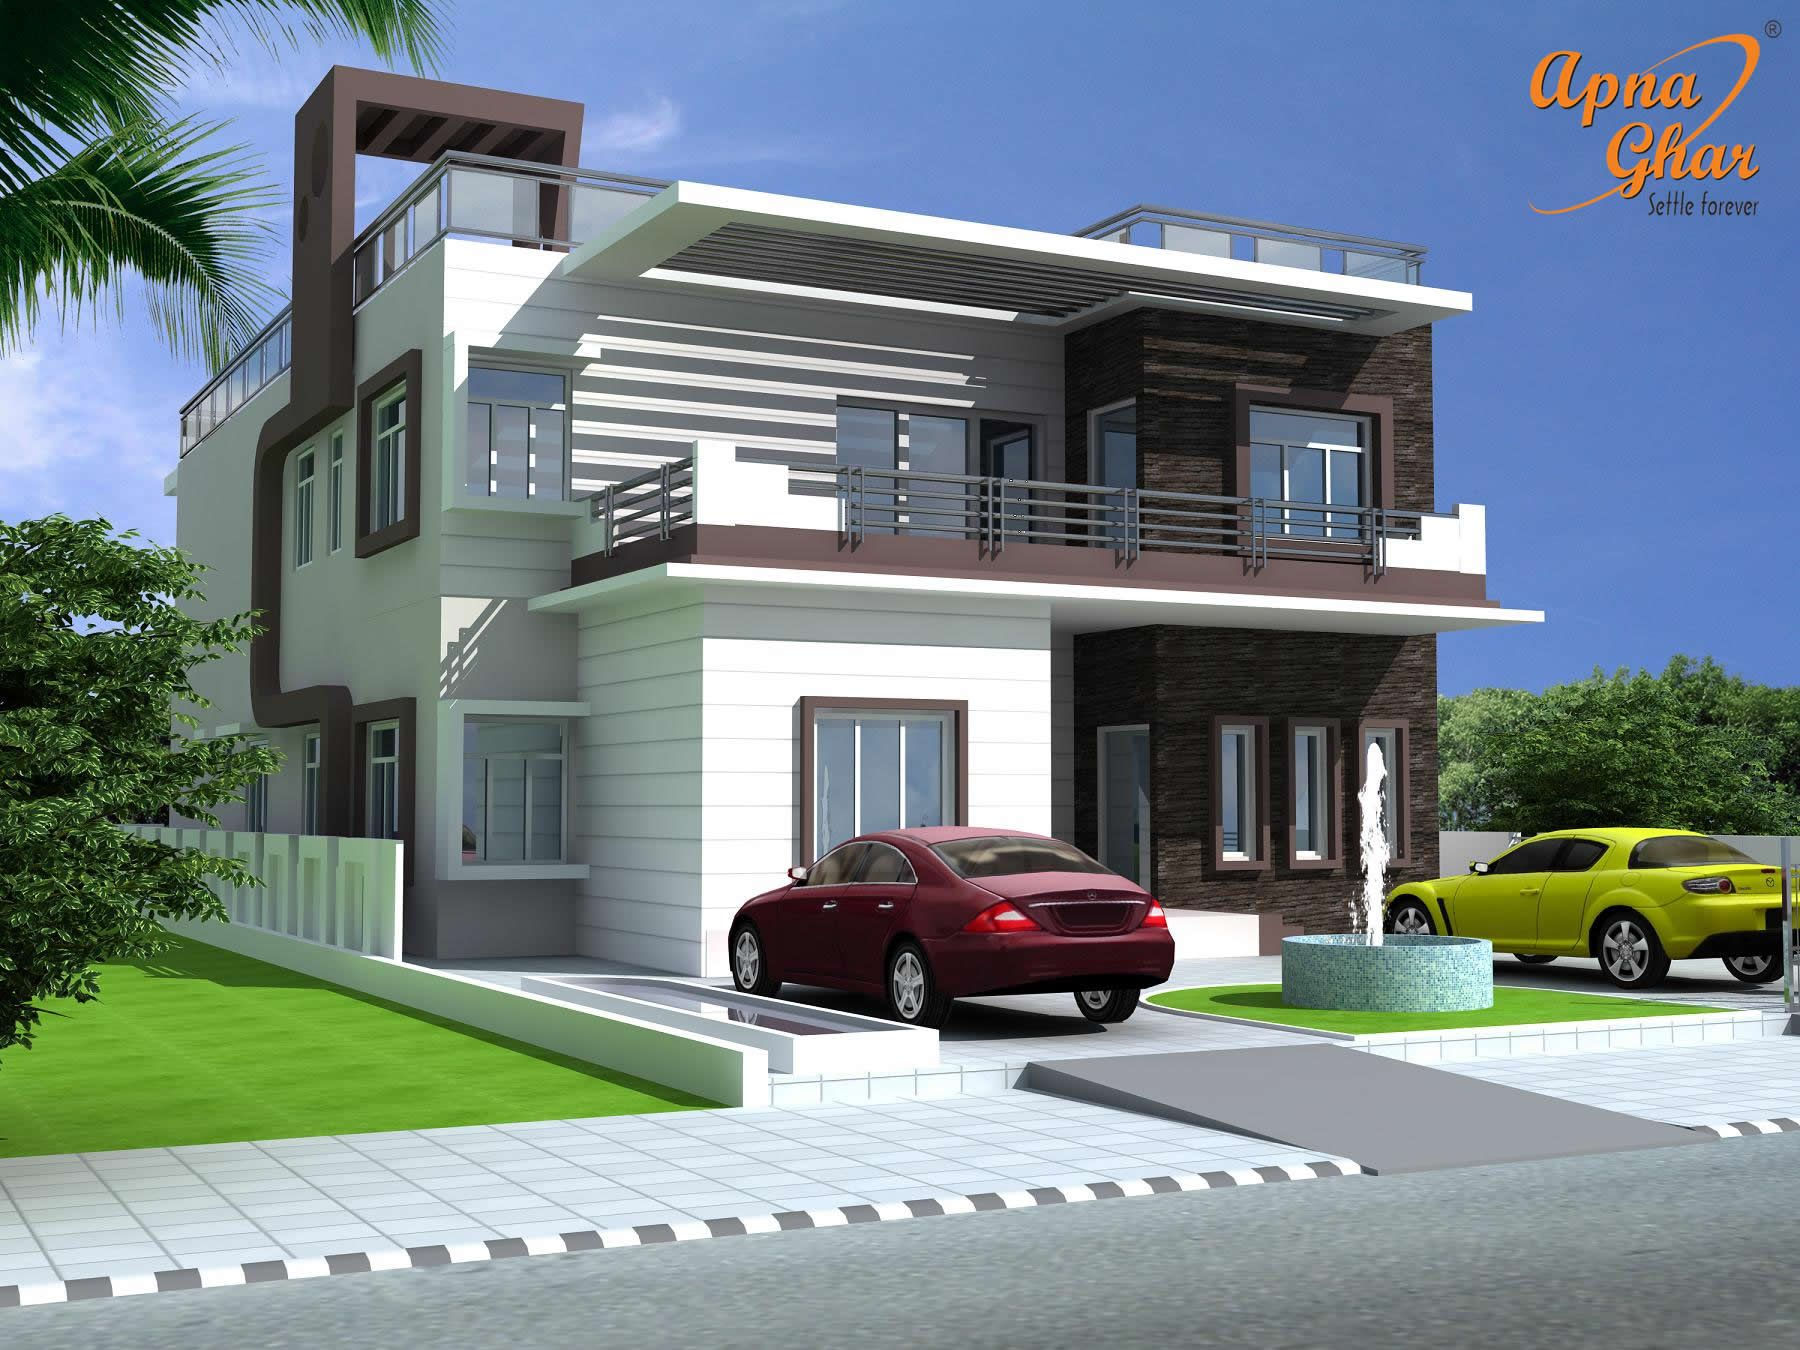 6 bedrooms duplex house design in 390m2 13m x 30m click for House duplex plans